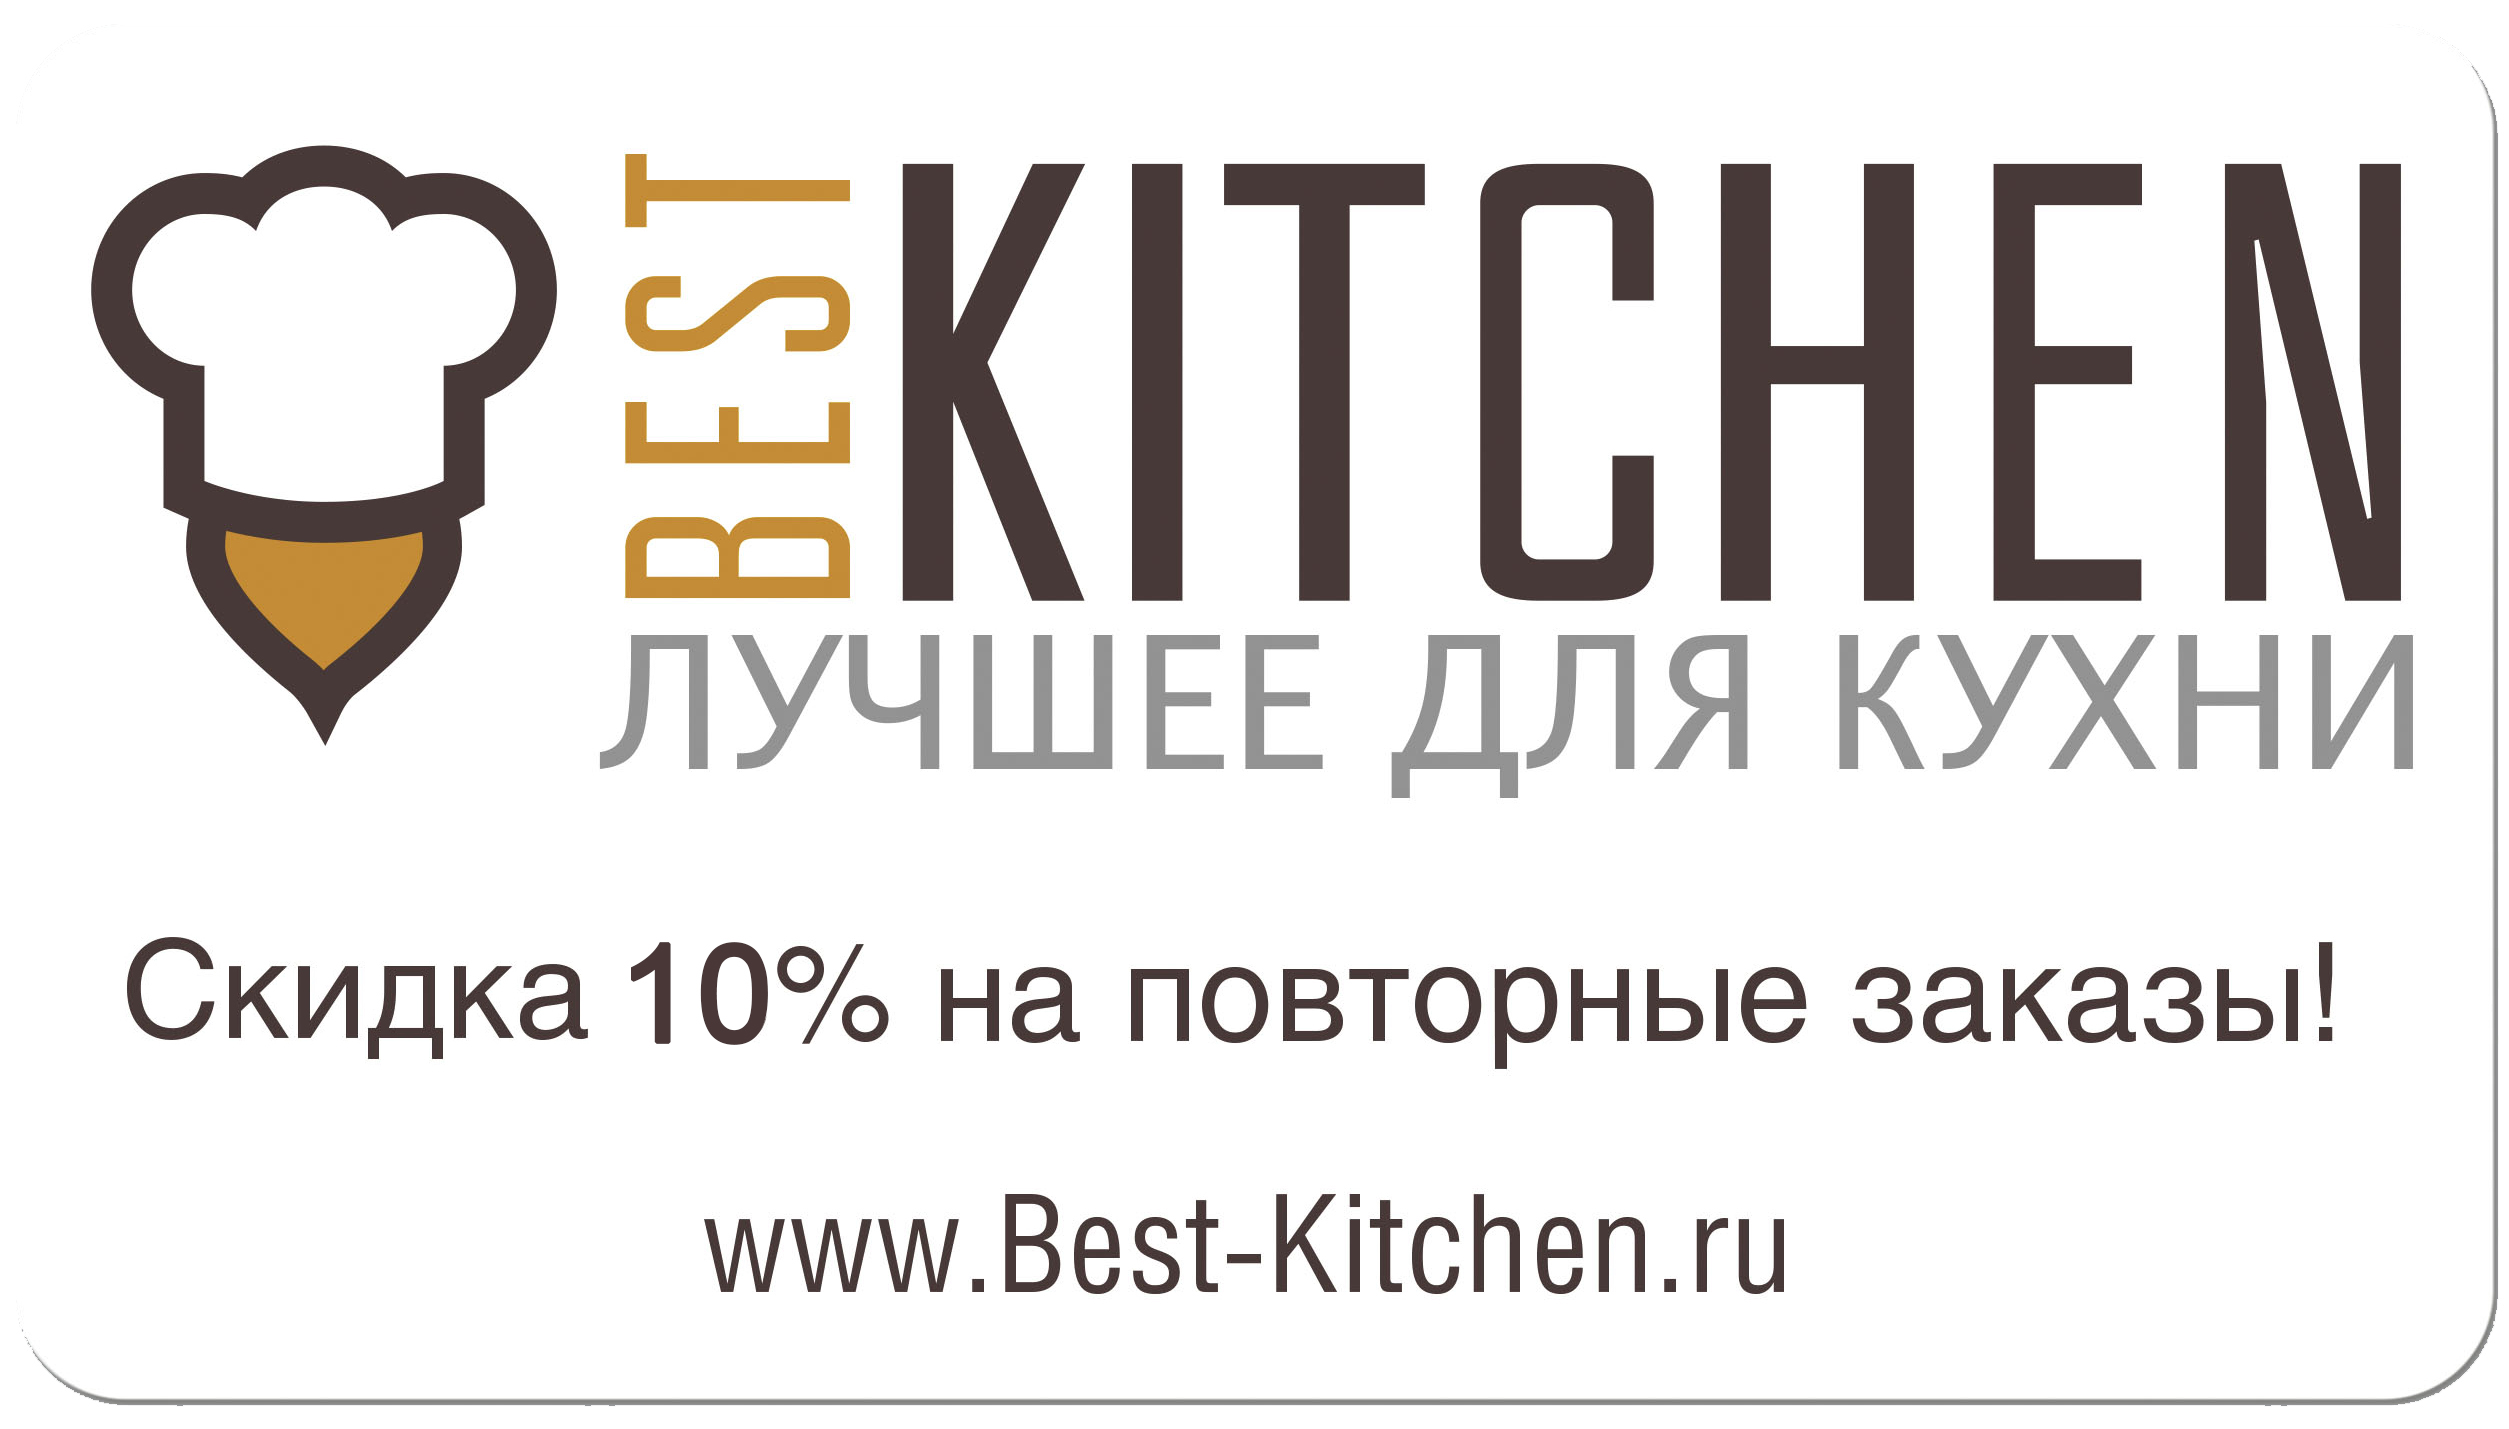 Best-Kitchen_50x90.jpg